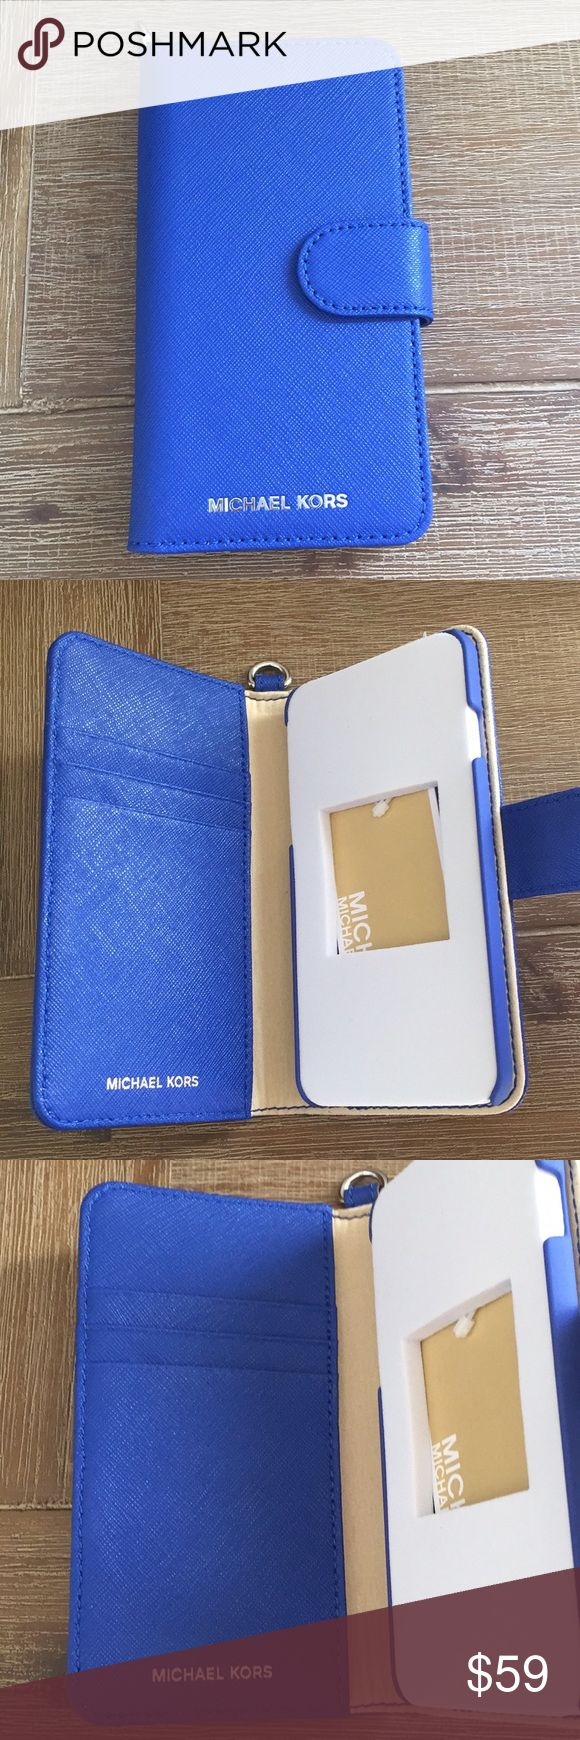 🆕Michael Kors IPhone 7 Folio Case, Blue Leather Michael Kors Electric Blue Saffiano Leather Folio case holds and protects your IPHONE 7 in style. Inside has 3 credit card slots to keep your ID or cards safe. Magnetic closure. New, never used, comes in original box. MICHAEL Michael Kors Accessories Phone Cases